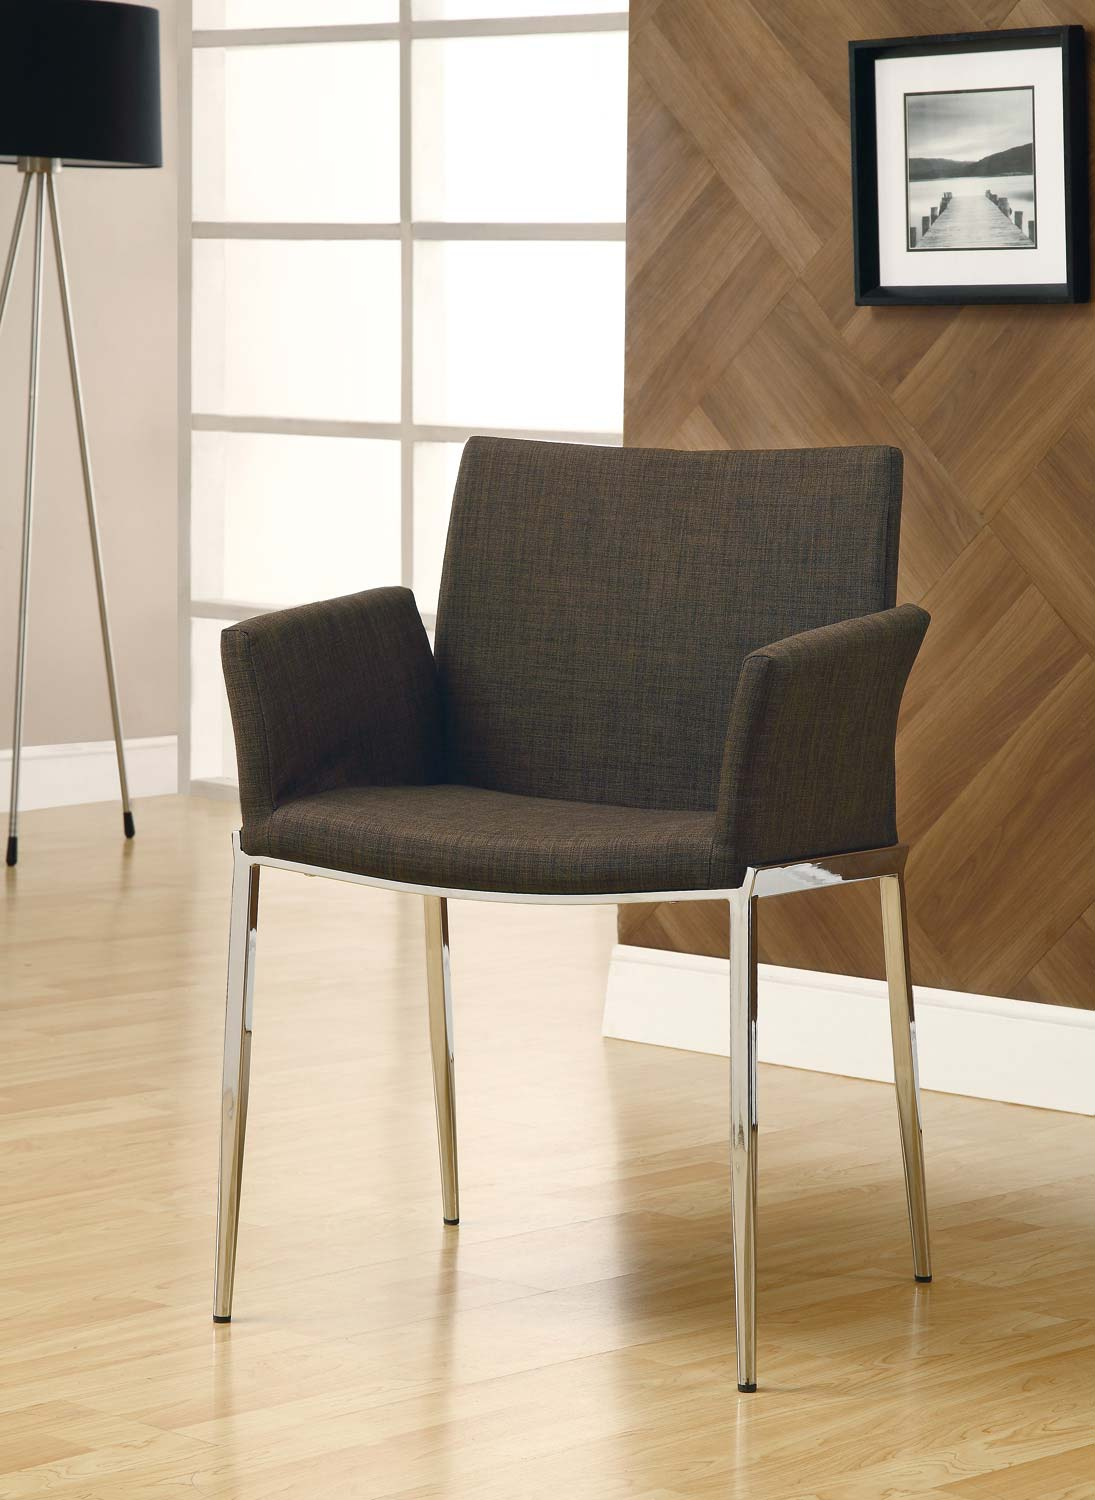 Coaster Mix & Match Dining Chair - Coffee